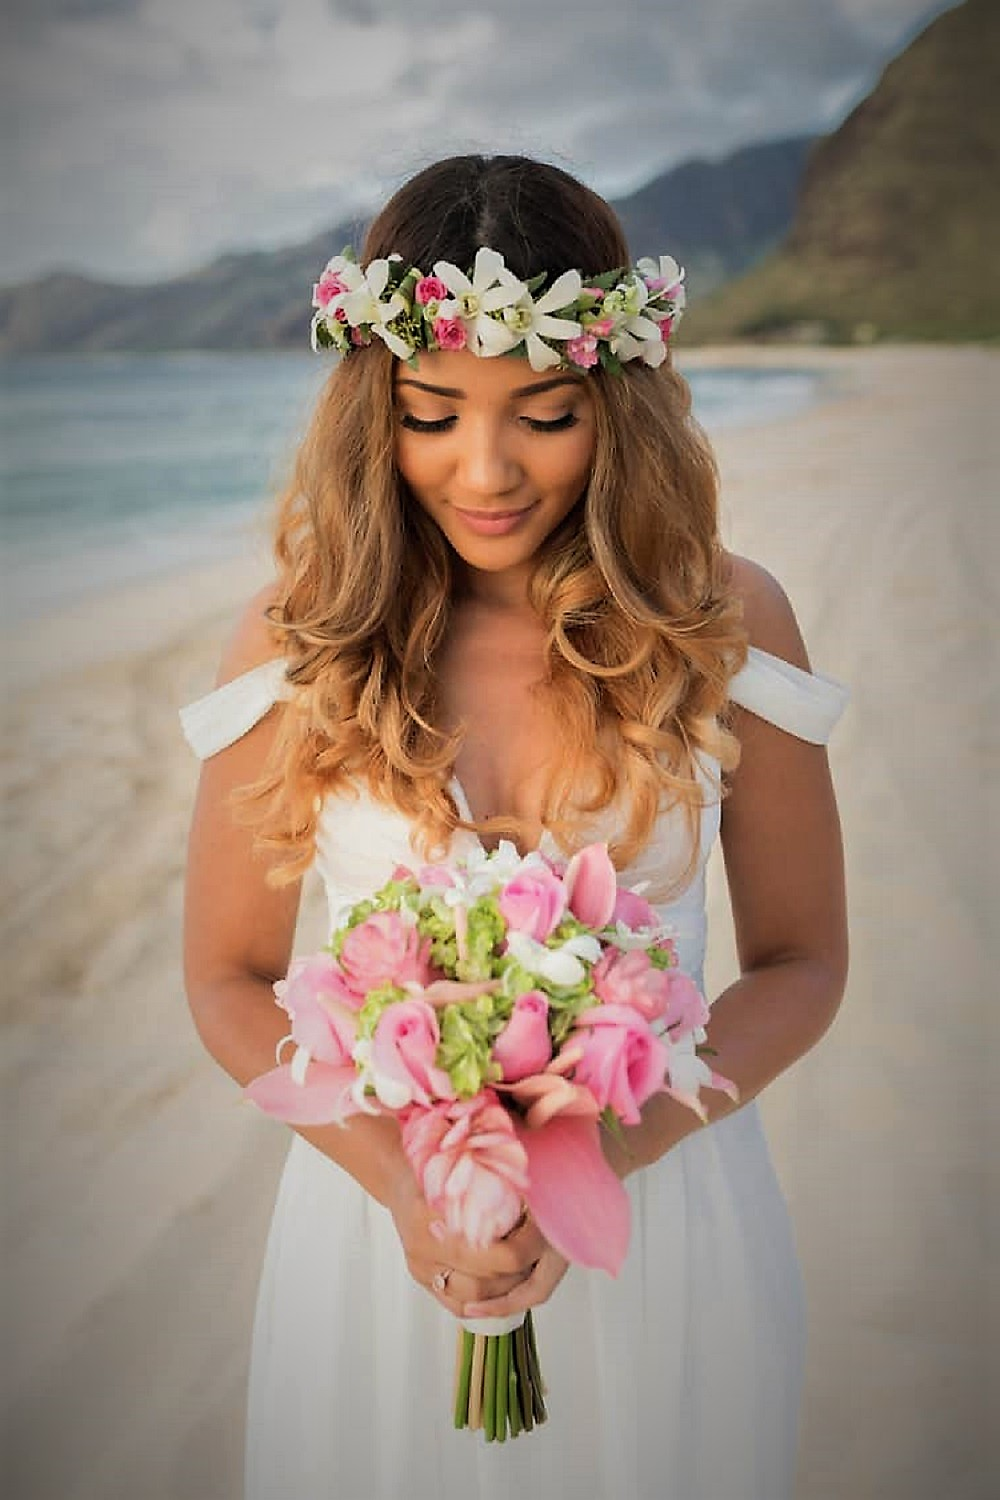 Beach Wedding Hairstyle Should Withstand the Wind